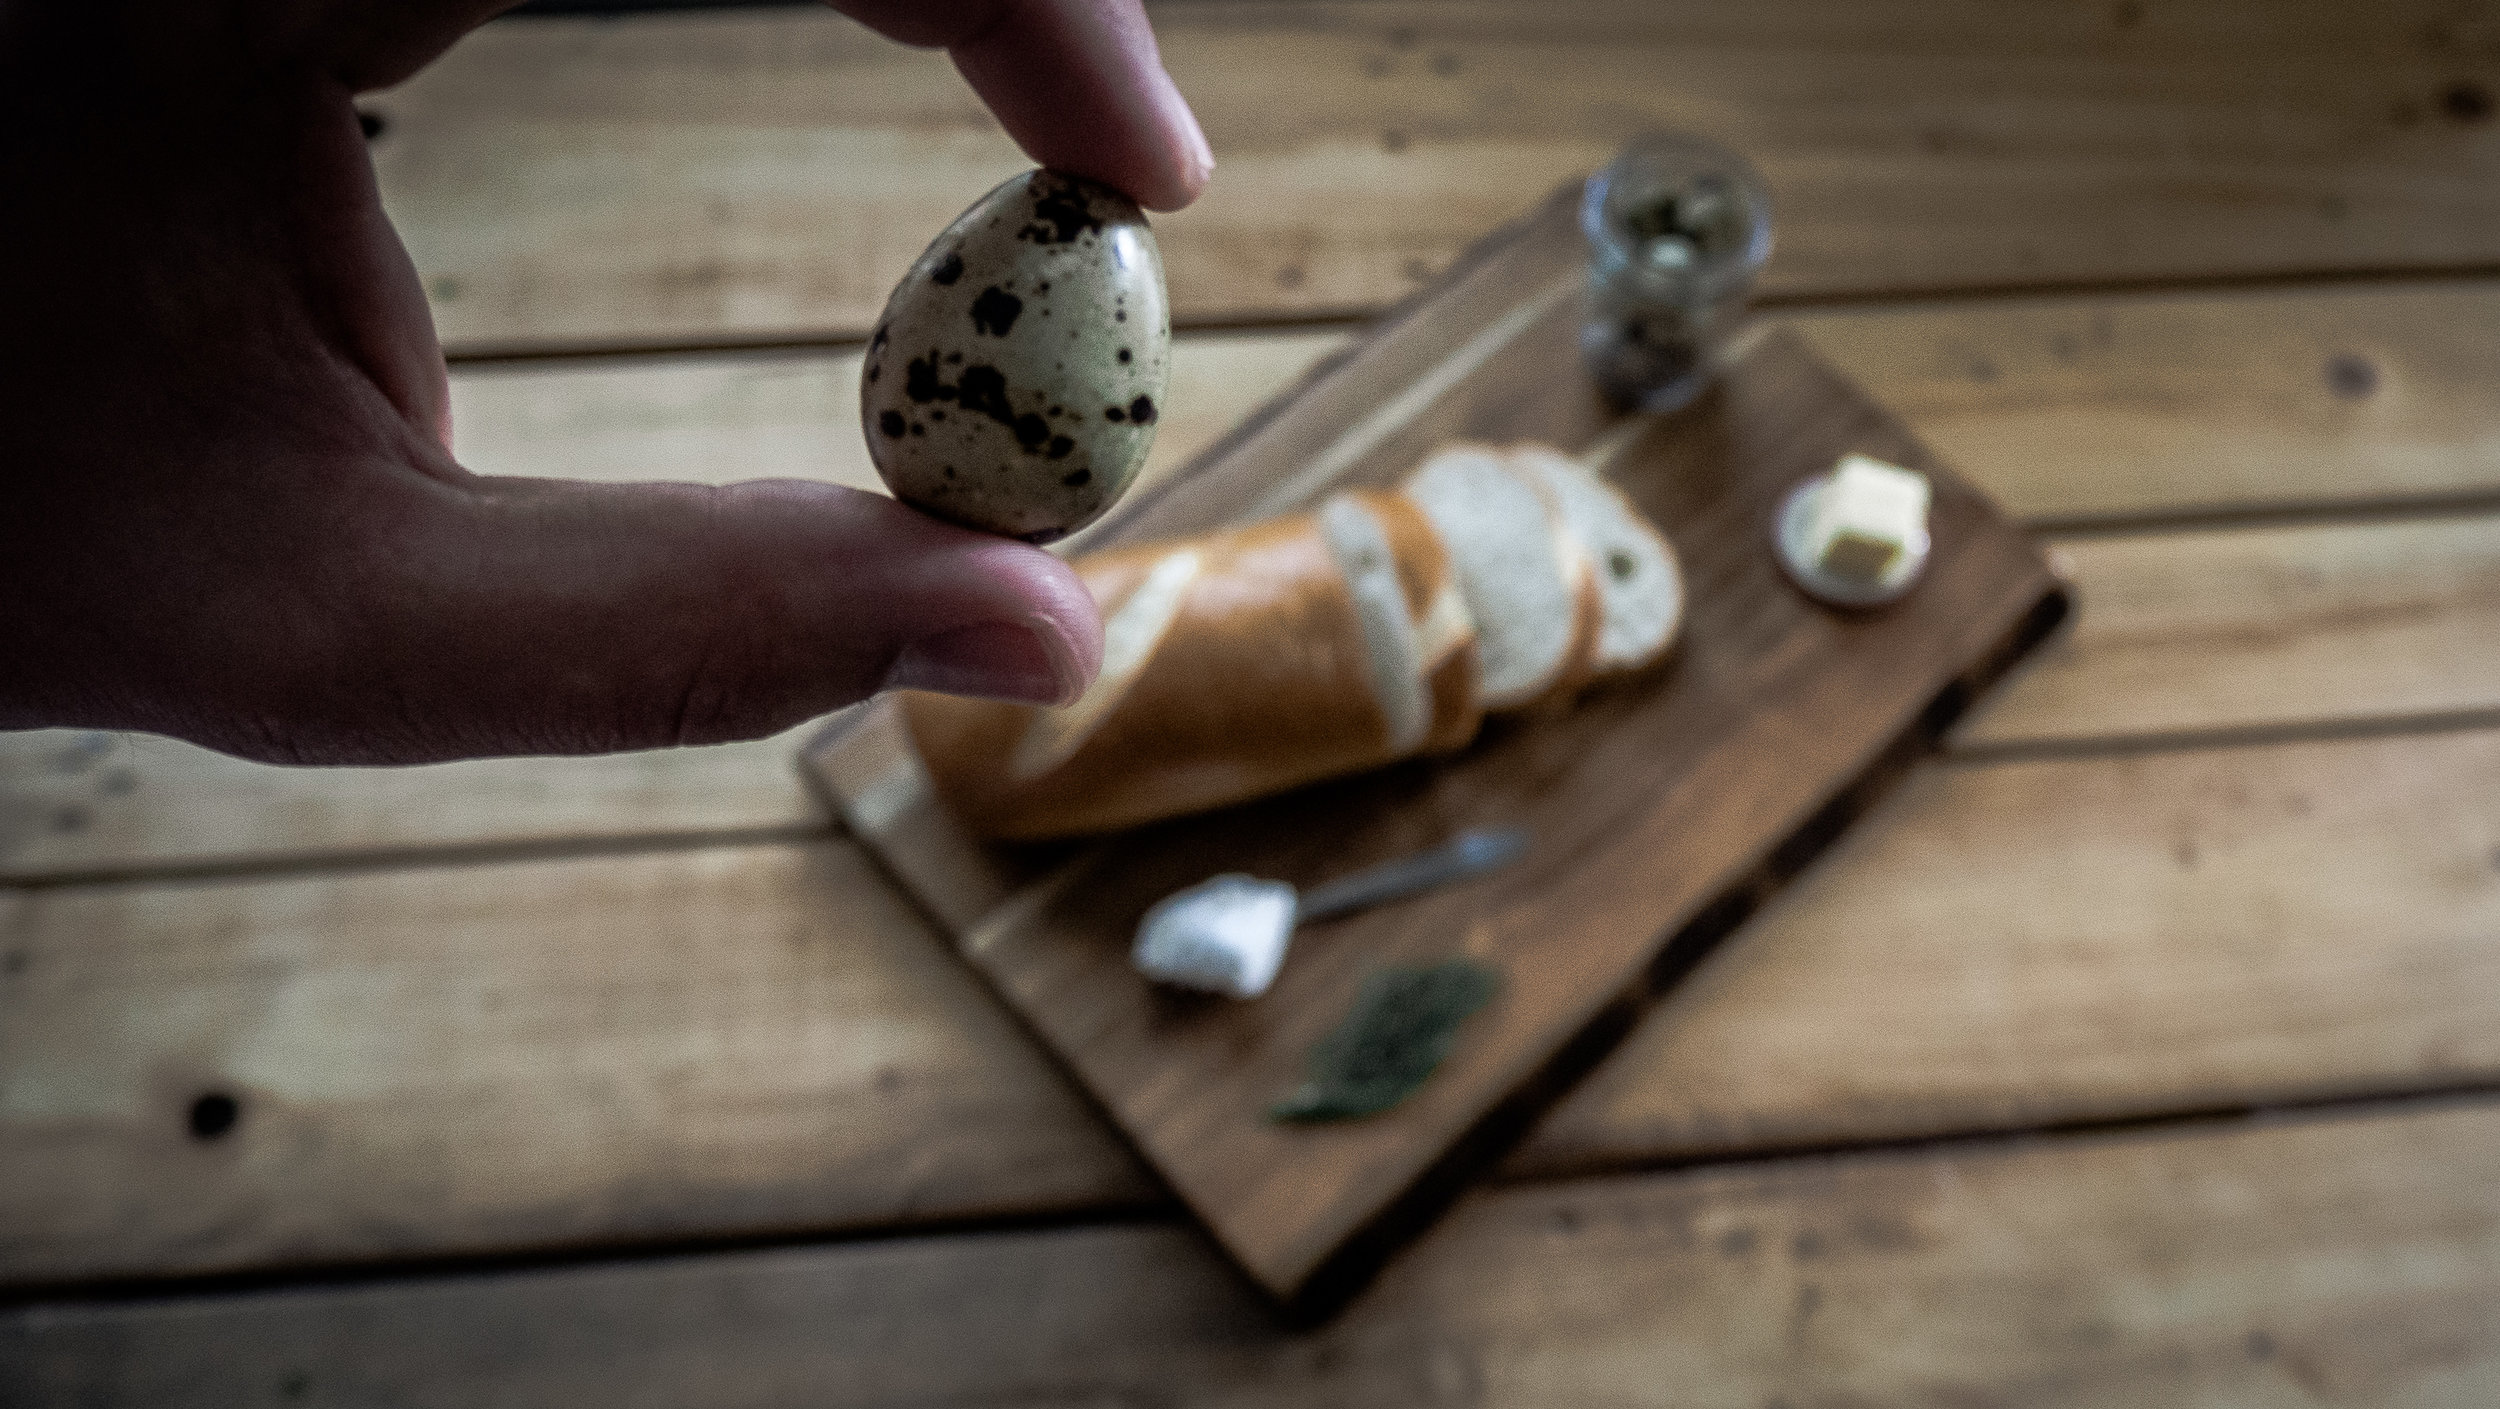 A quail egg, often spotted, is about 1/4 the size of a grocery store chicken egg.